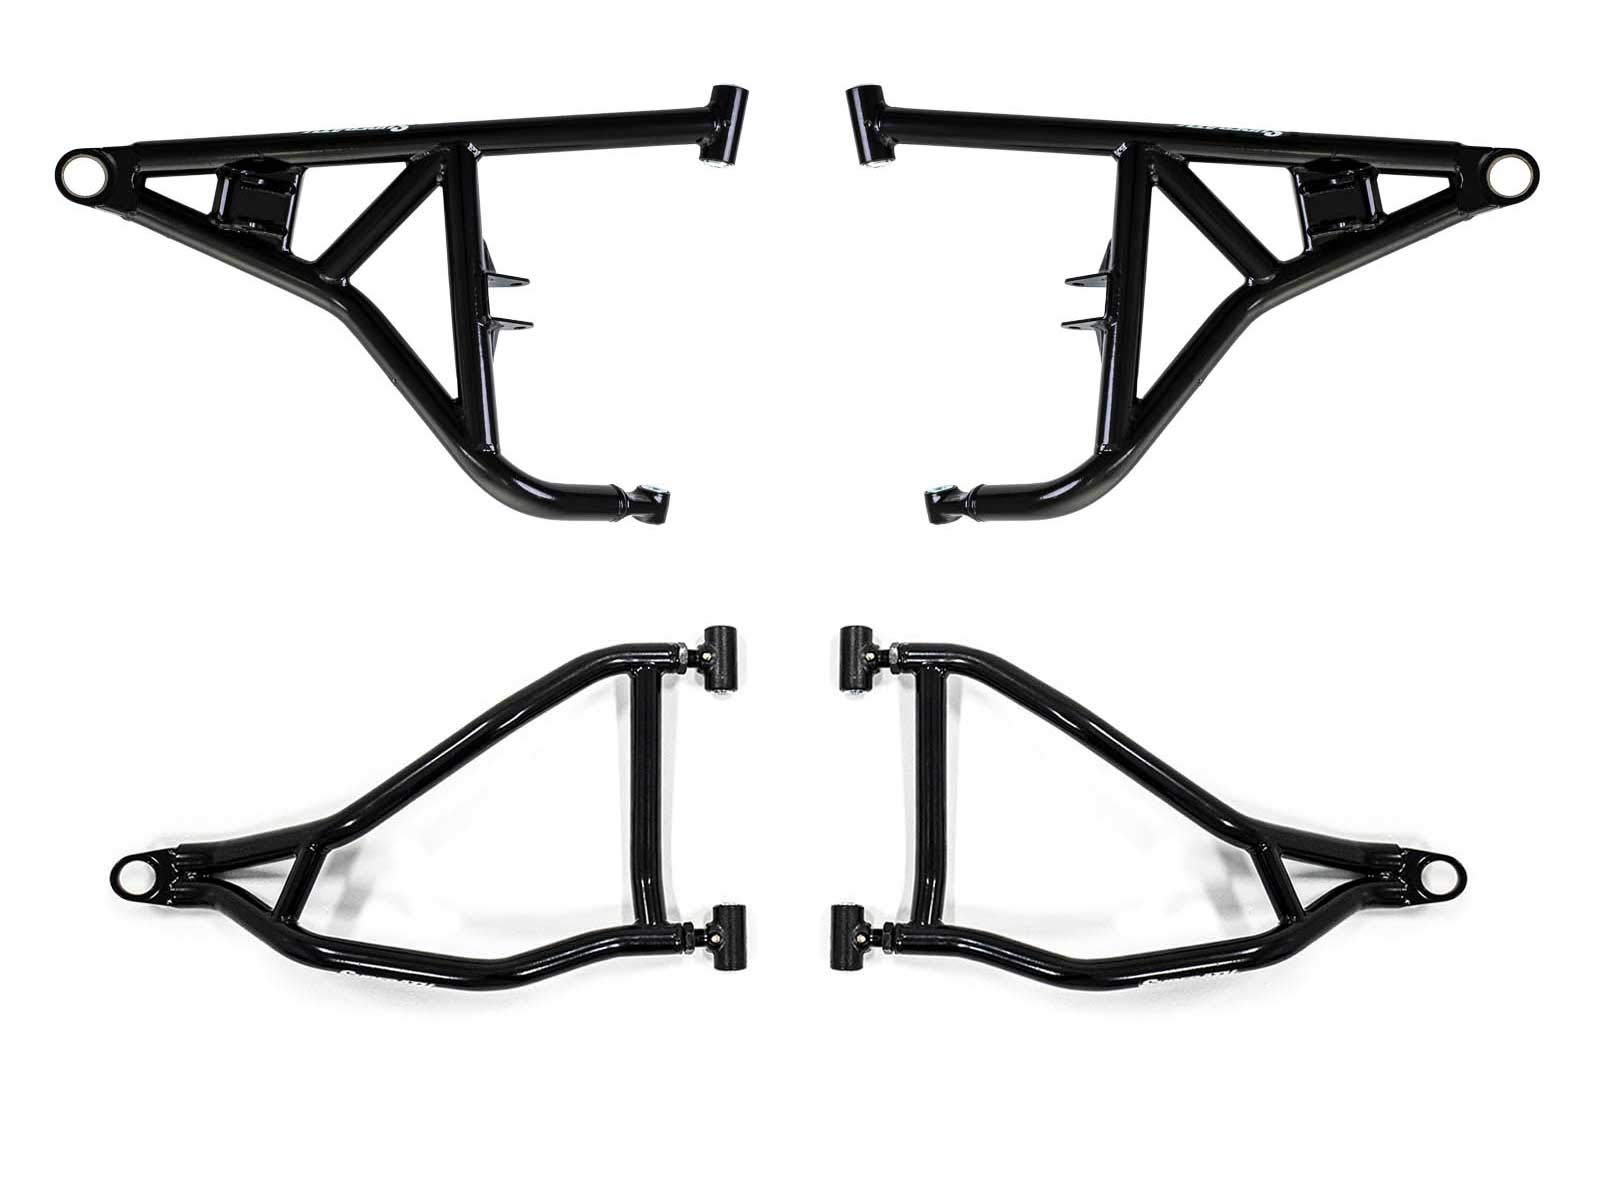 SuperATV High Clearance A-Arms for Polaris RZR XP 1000 / XP 4 1000 (2014+) - Upper and Lower Arms - Black by SuperATV.com (Image #8)